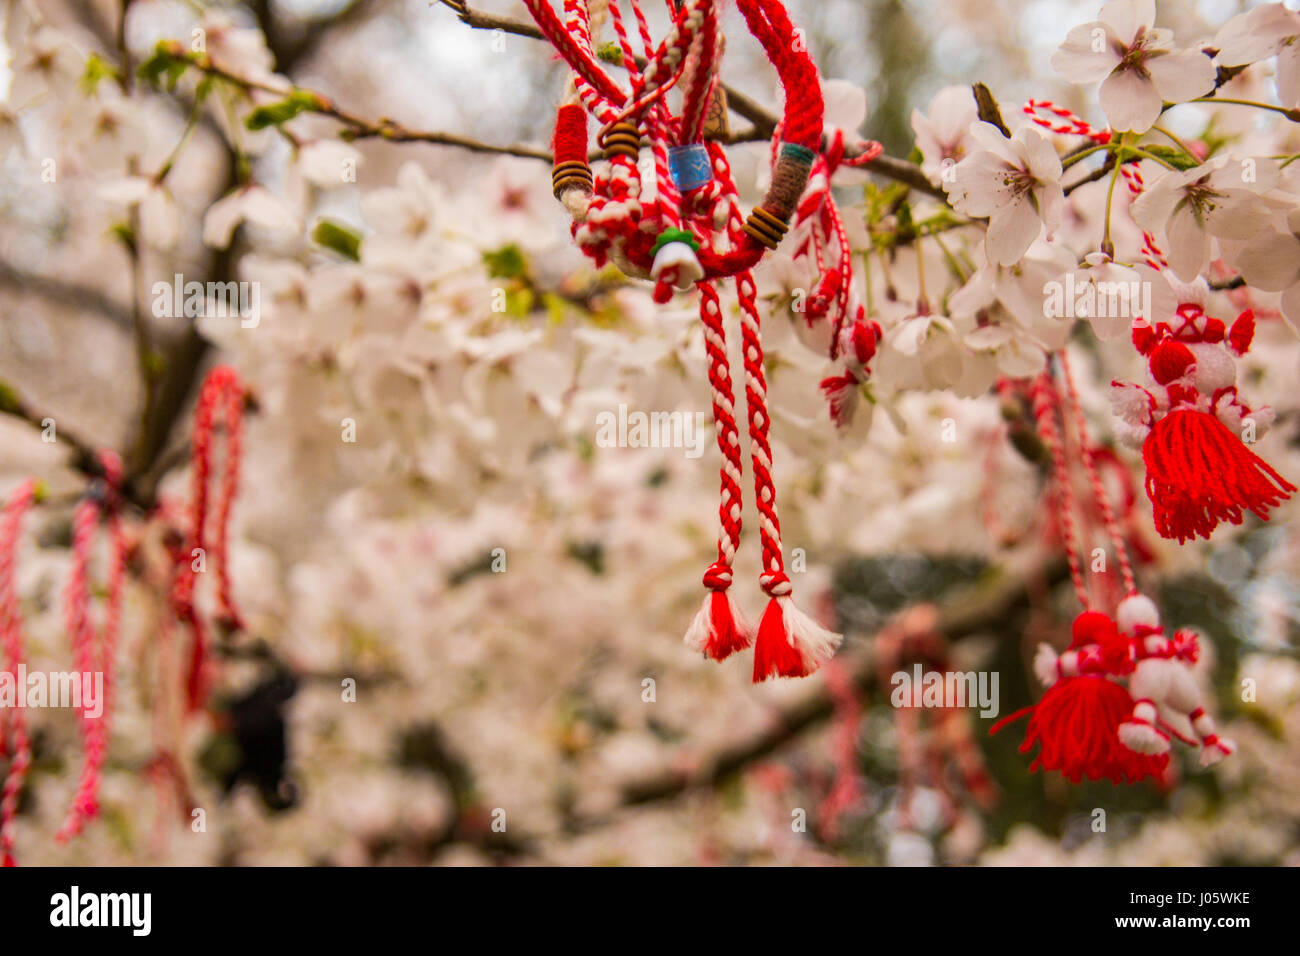 Red oriental ornamentals on a blooming cherry tree. bulgarian style. - Stock Image